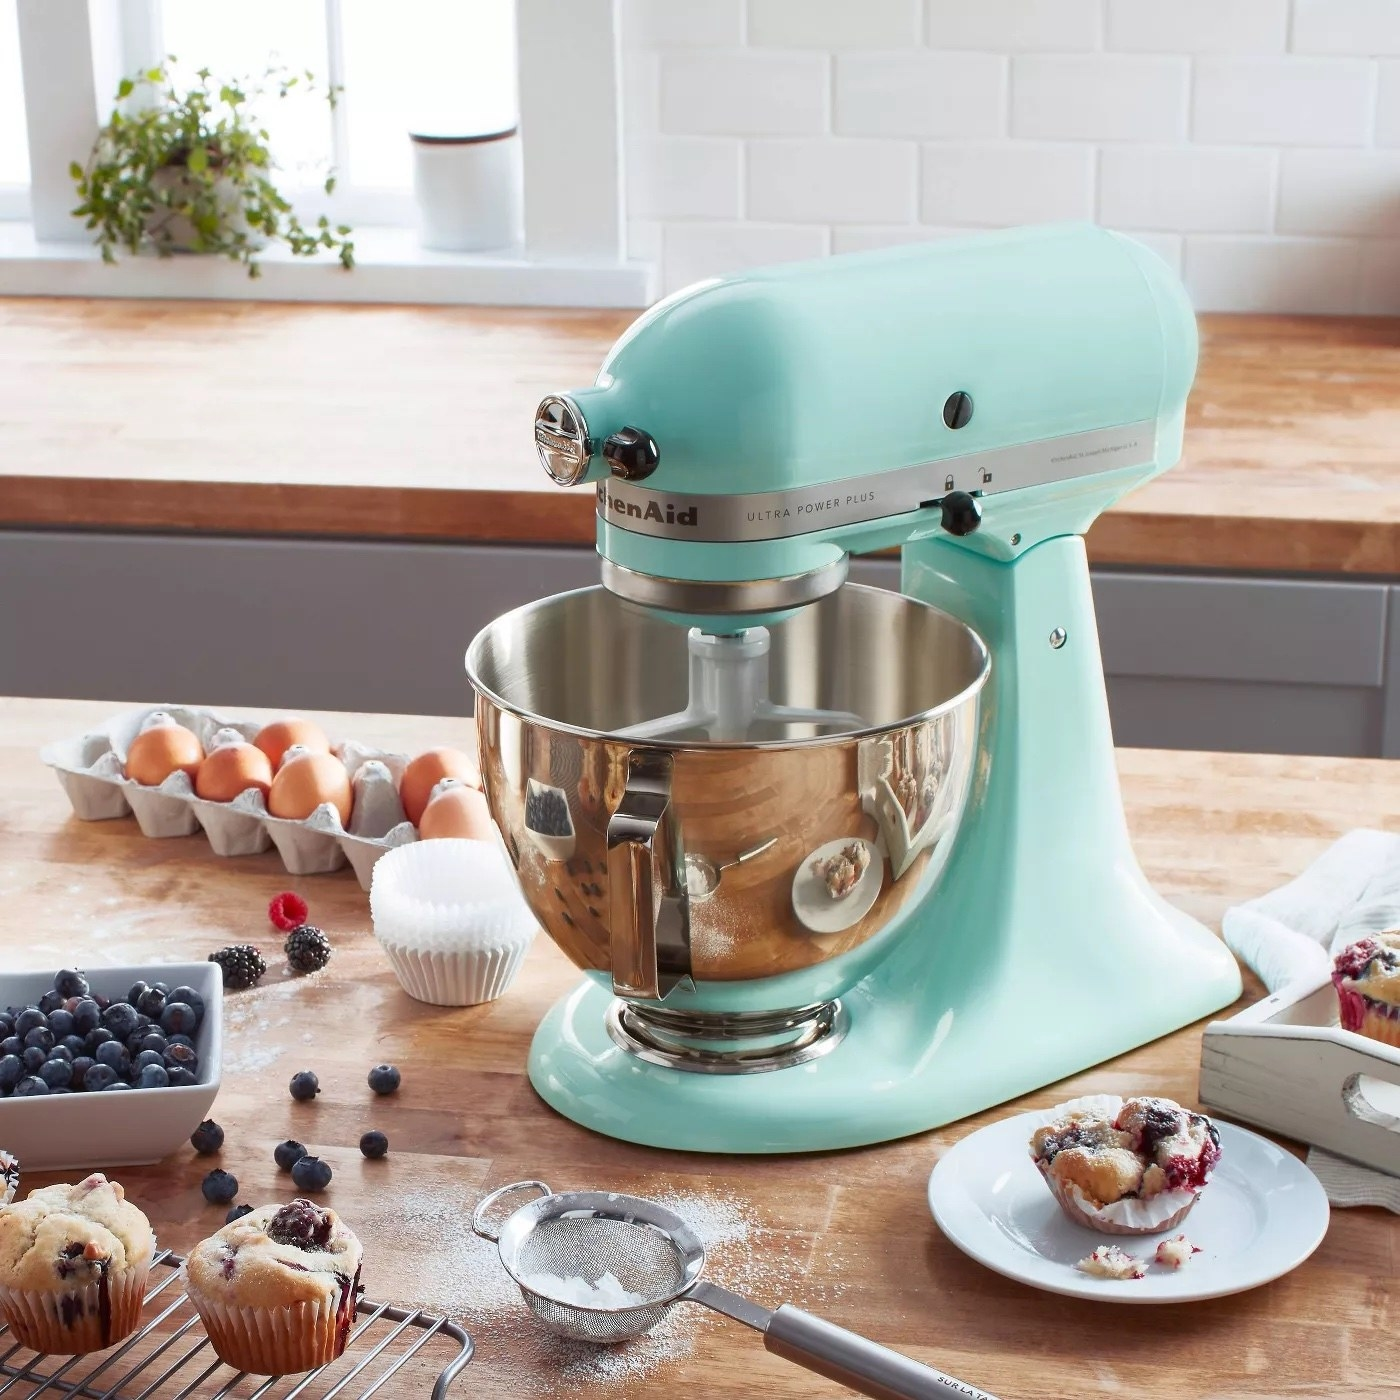 the mixer on a counter with baking ingredients